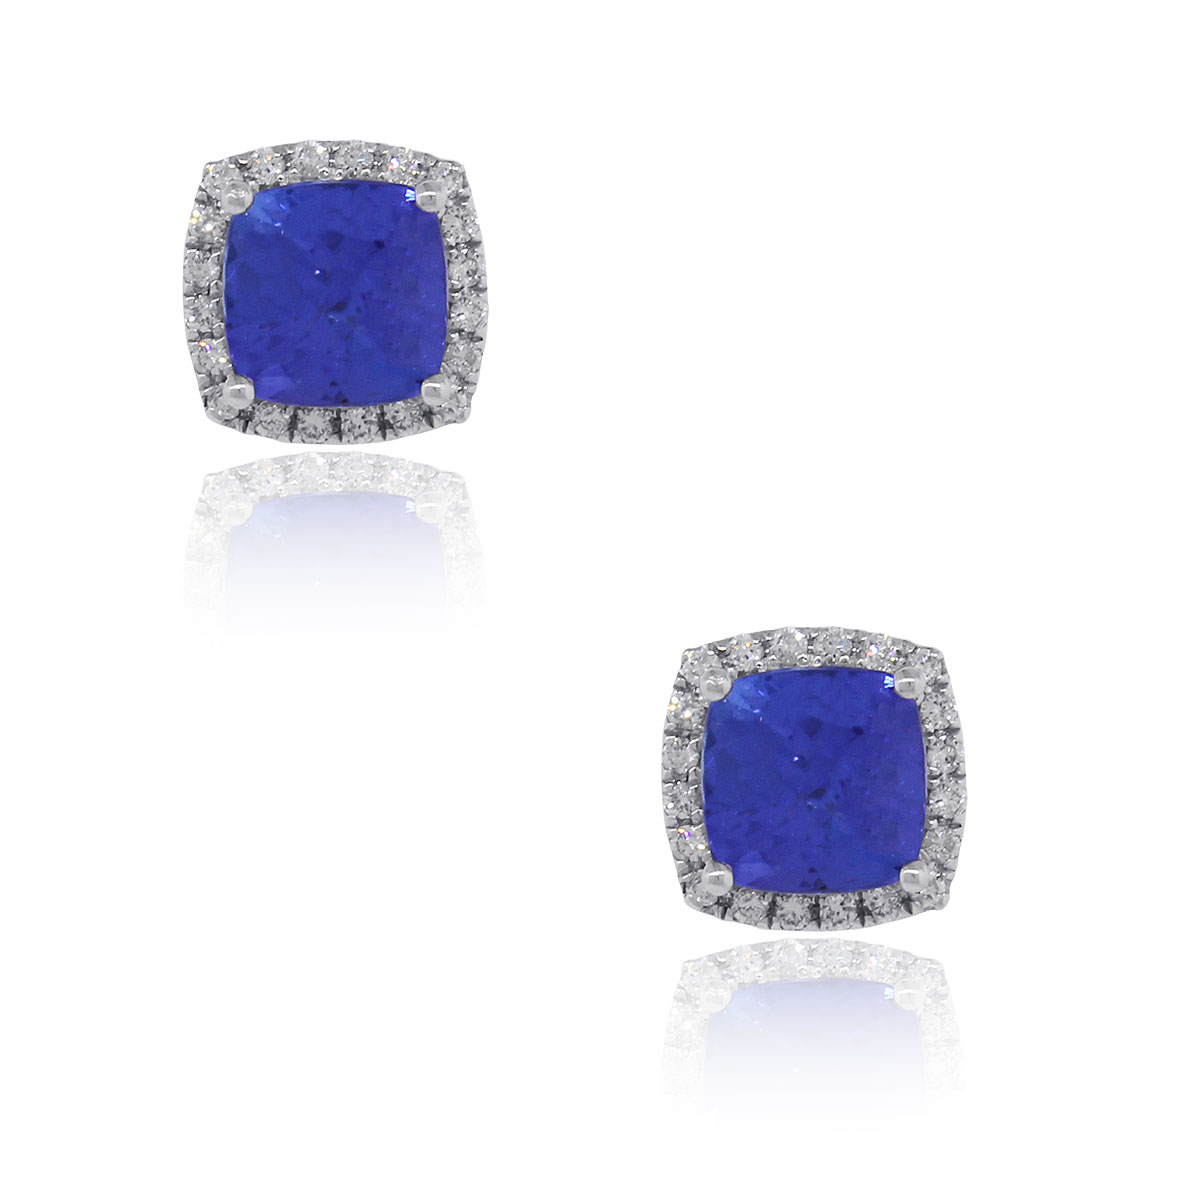 31d81d4945005c 14k White Gold 3.07ct Tanzanite and Diamond Halo Earrings